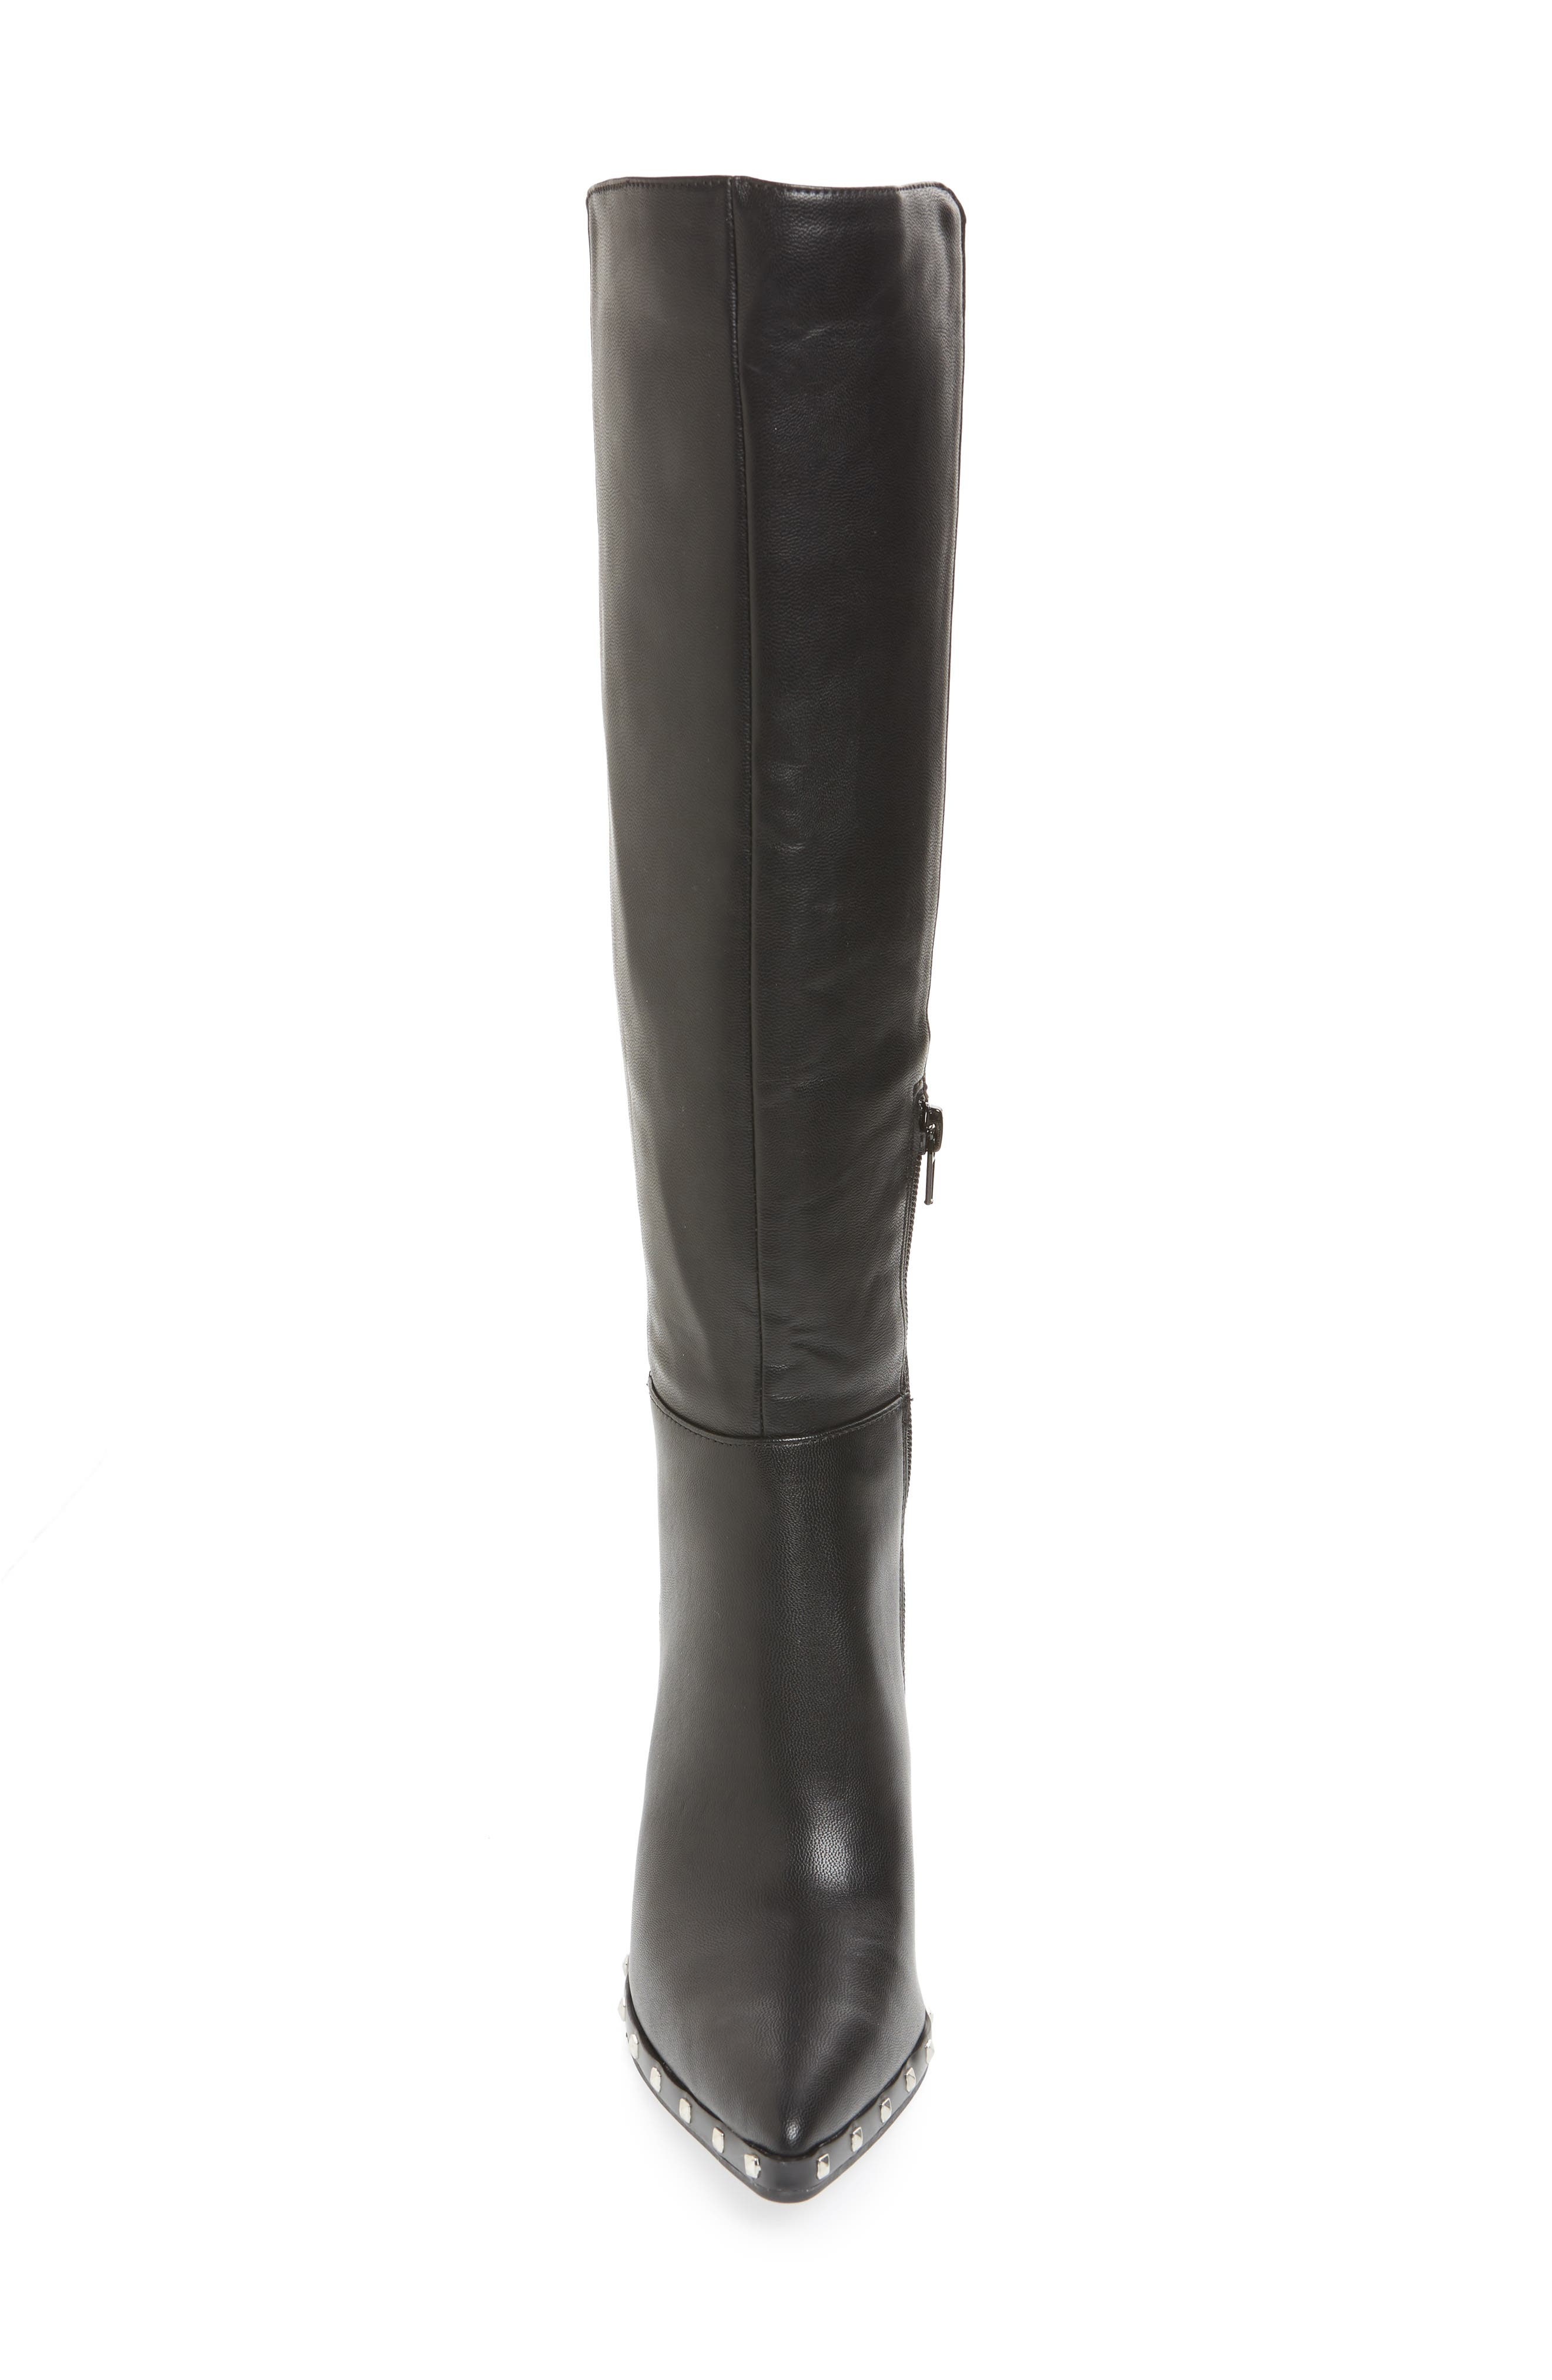 CHARLES BY CHARLES DAVID, Studded Knee High Stretch Boot, Alternate thumbnail 4, color, BLACK FAUX NUBUCK LEATHER